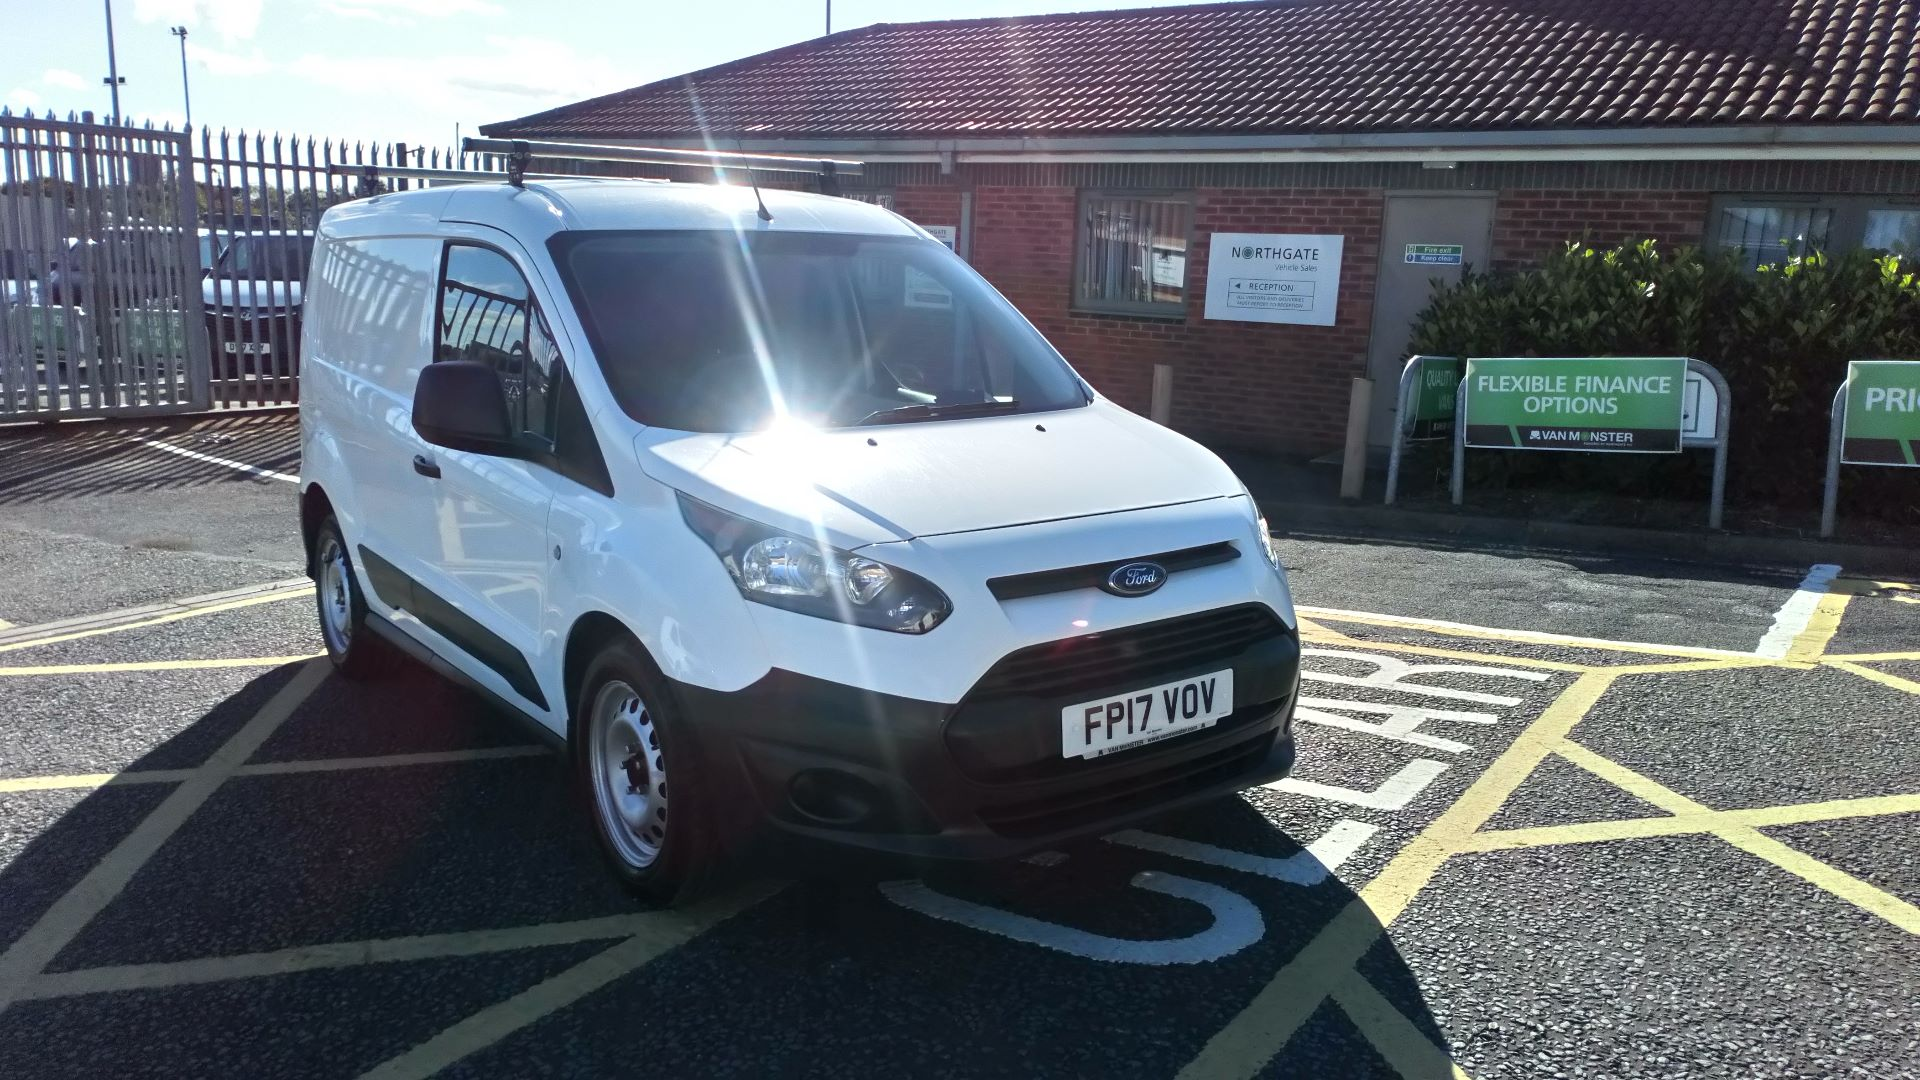 2017 Ford Transit Connect 1.5 Tdci 75Ps Van (FP17VOV) Image 1